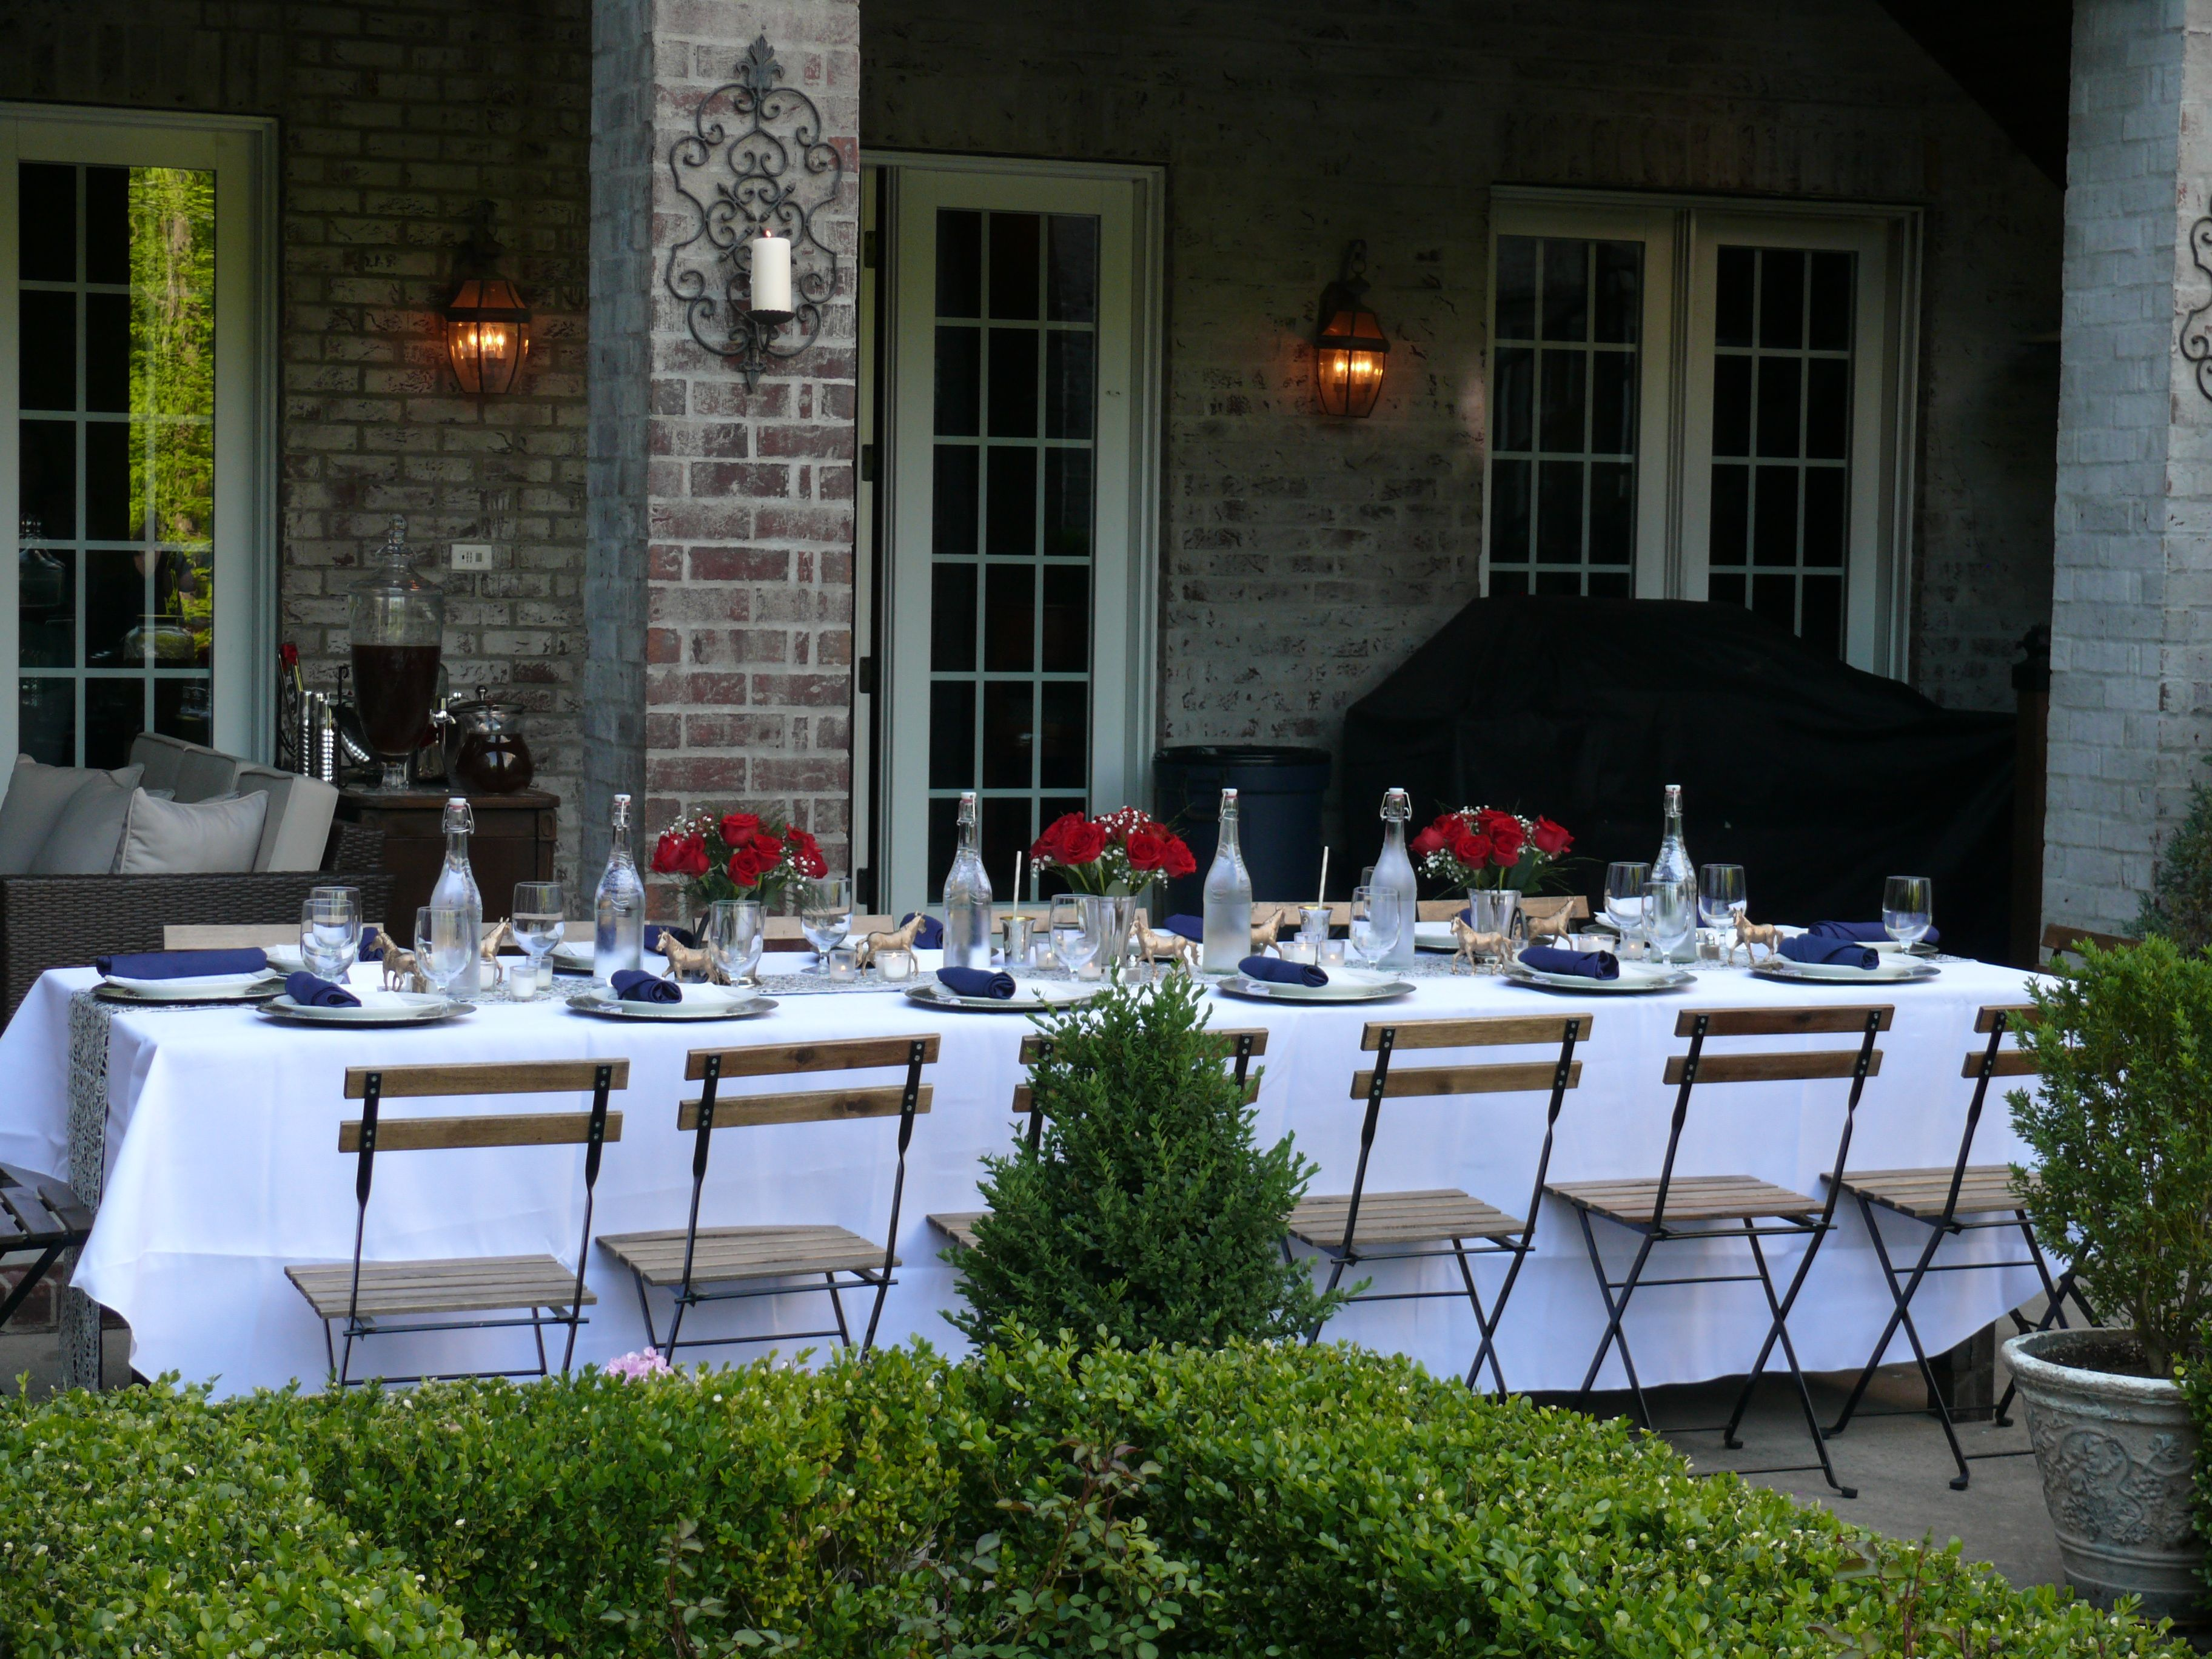 Pin by Linda VanHoose on Prom dinner at home | Backyard ...